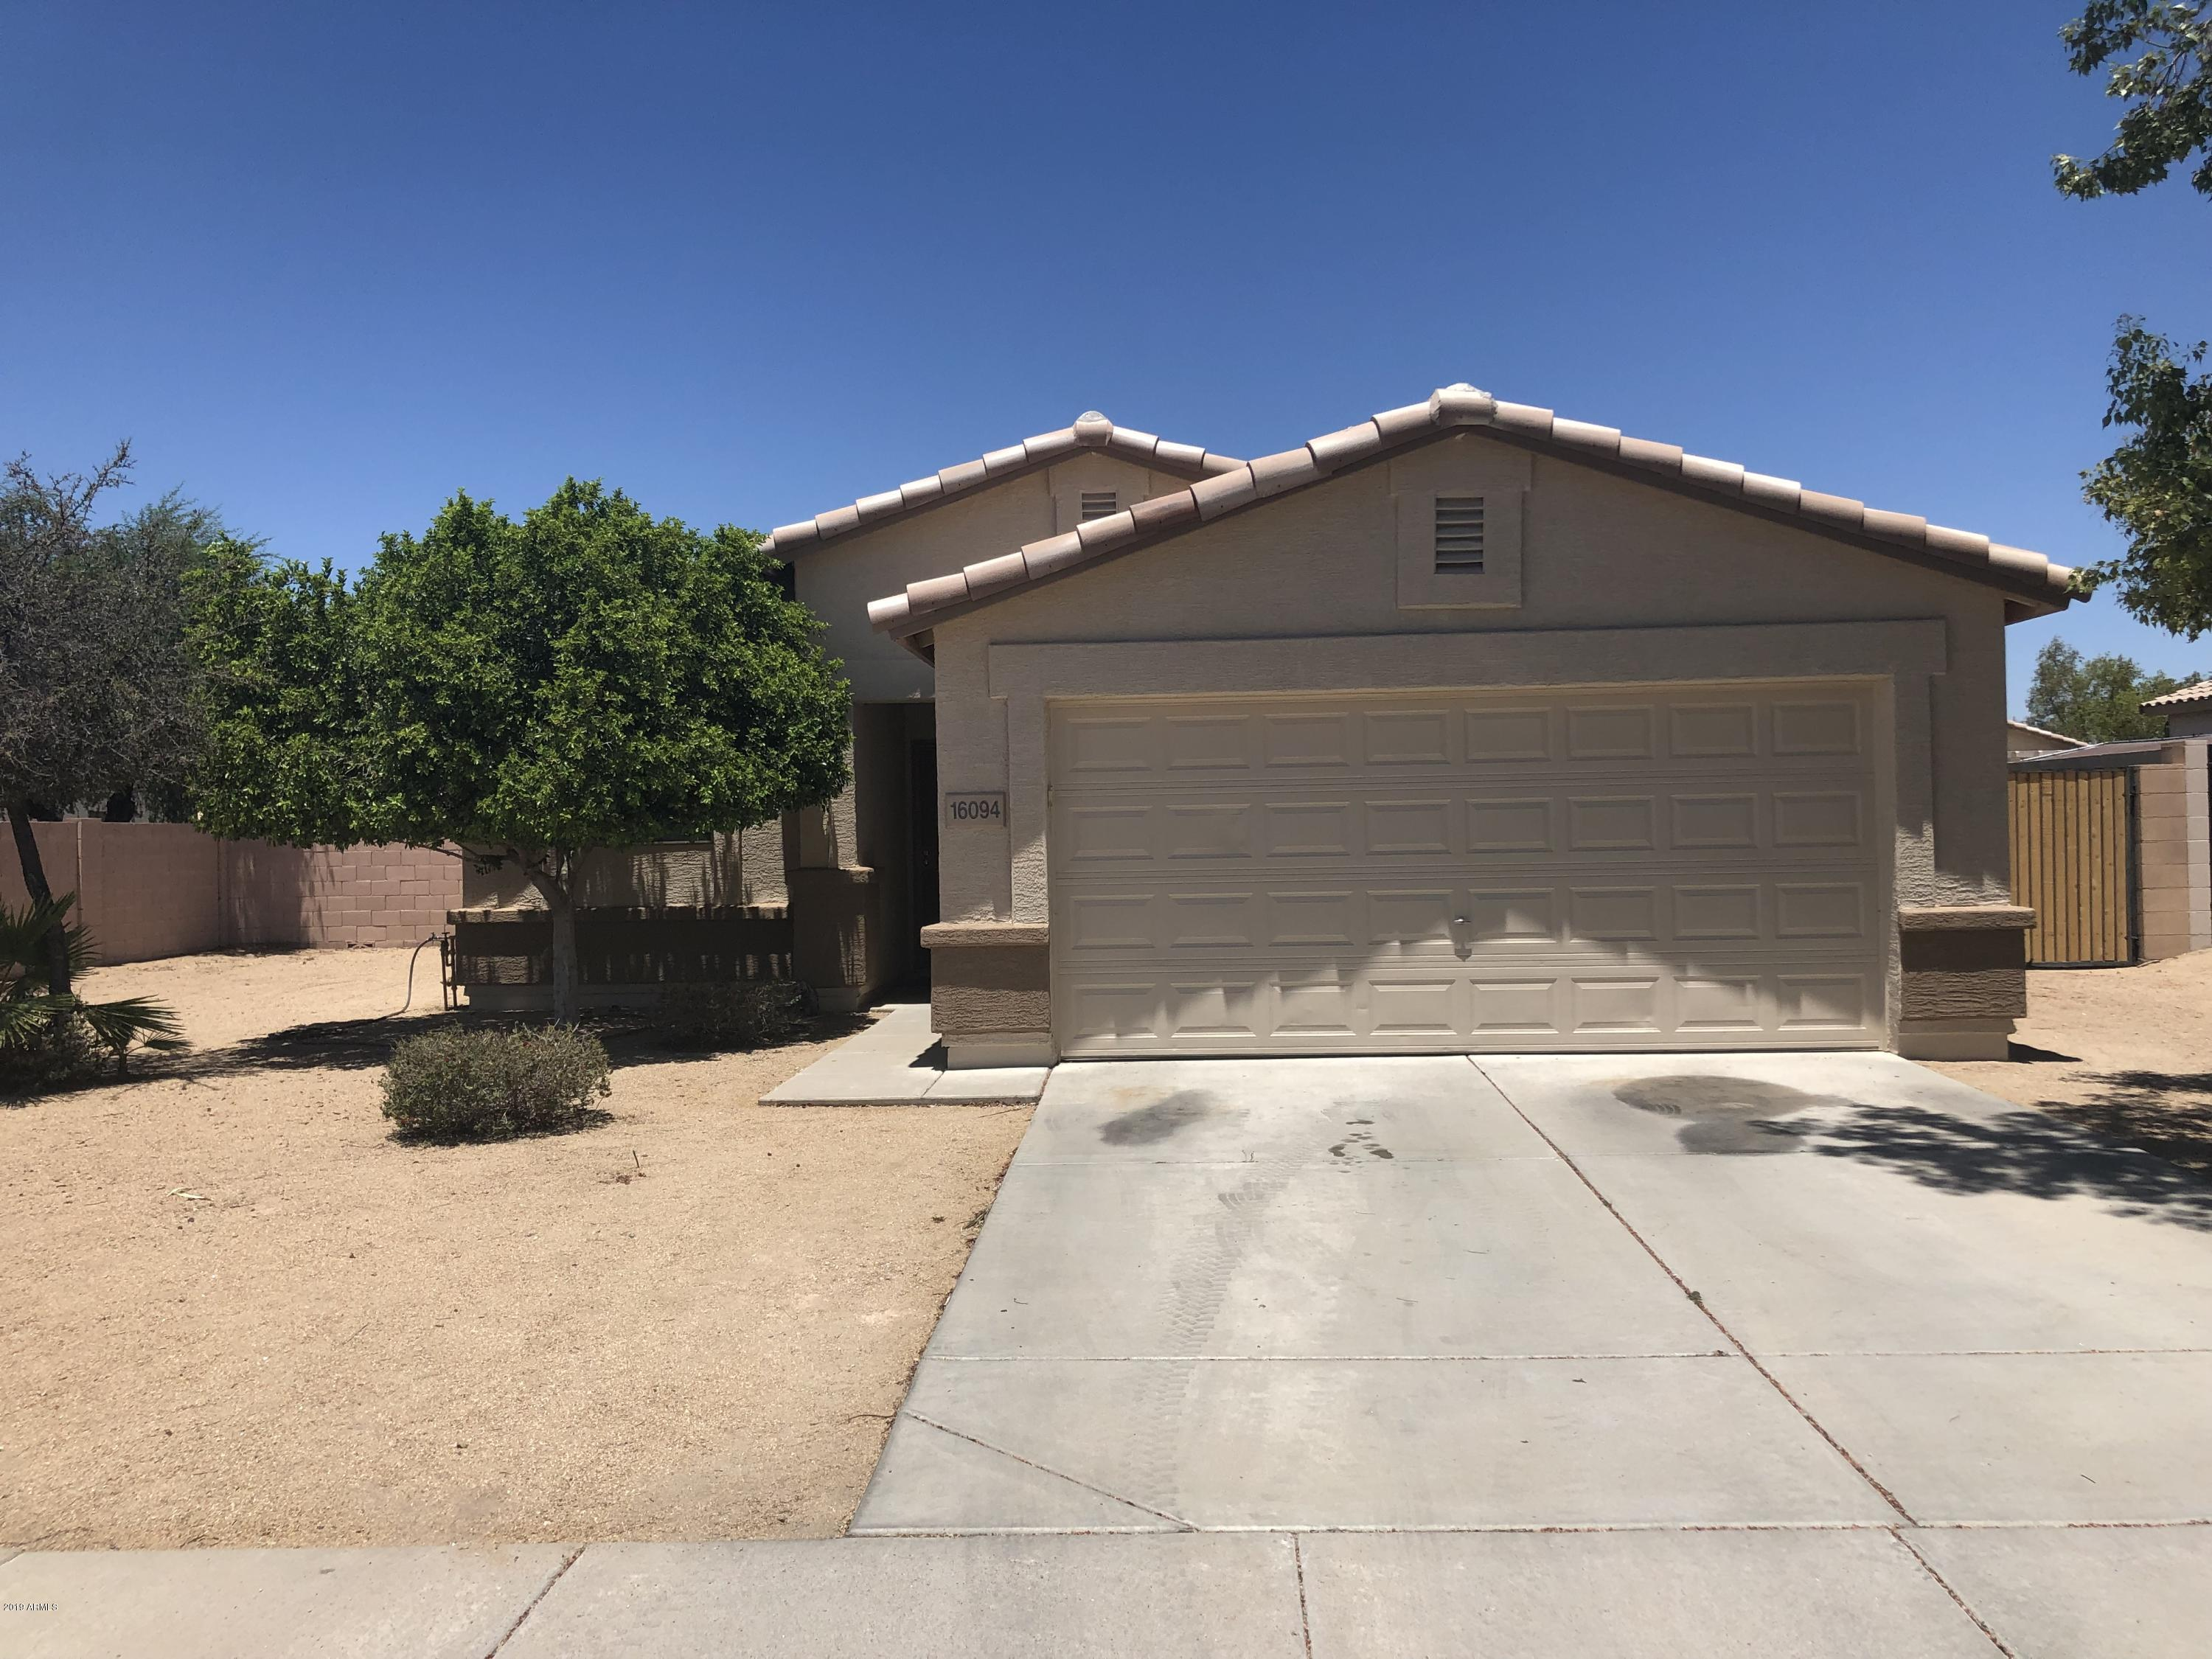 Photo of 16094 W LINCOLN Street, Goodyear, AZ 85338